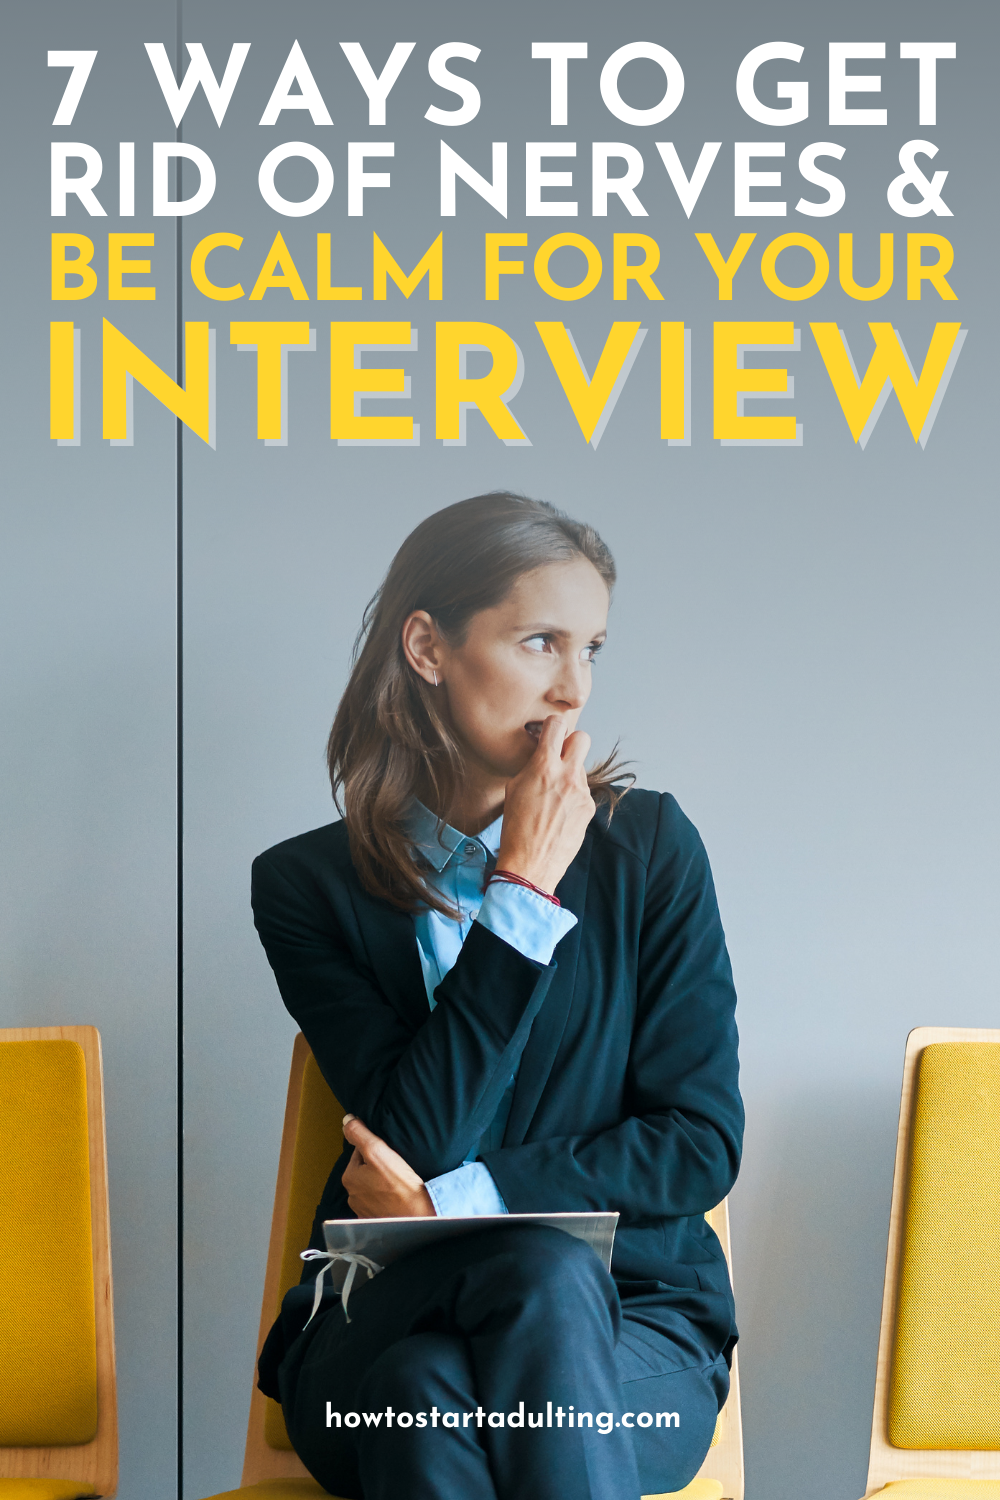 Easy Ways To Get Rid Of Nerves And Be Calm For A Job Interview, How to get over being nervous for interviews